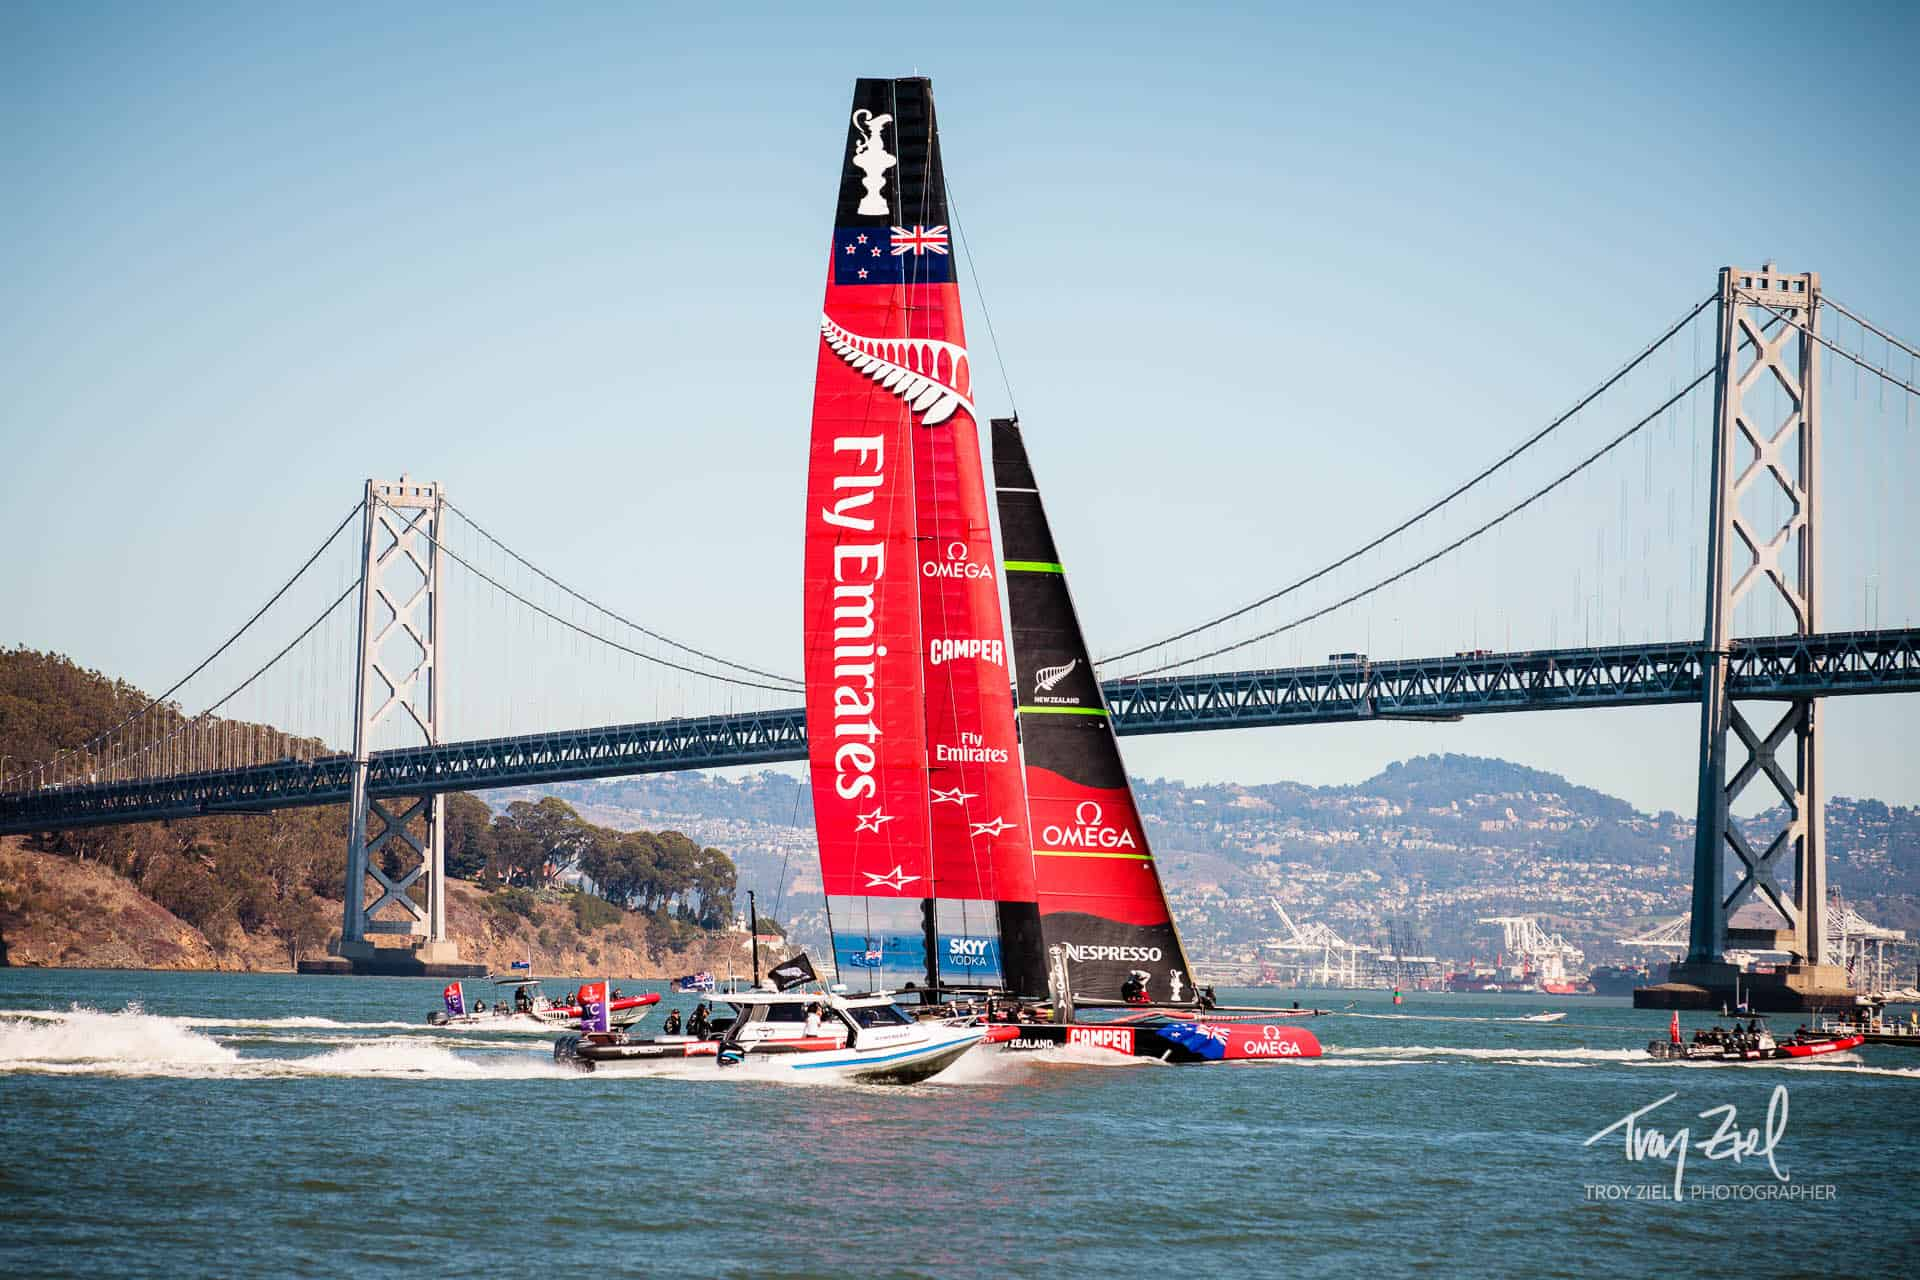 America's Cup Emirates Boat, in the San Francisco Bay, with the Bay Bridge in the background.